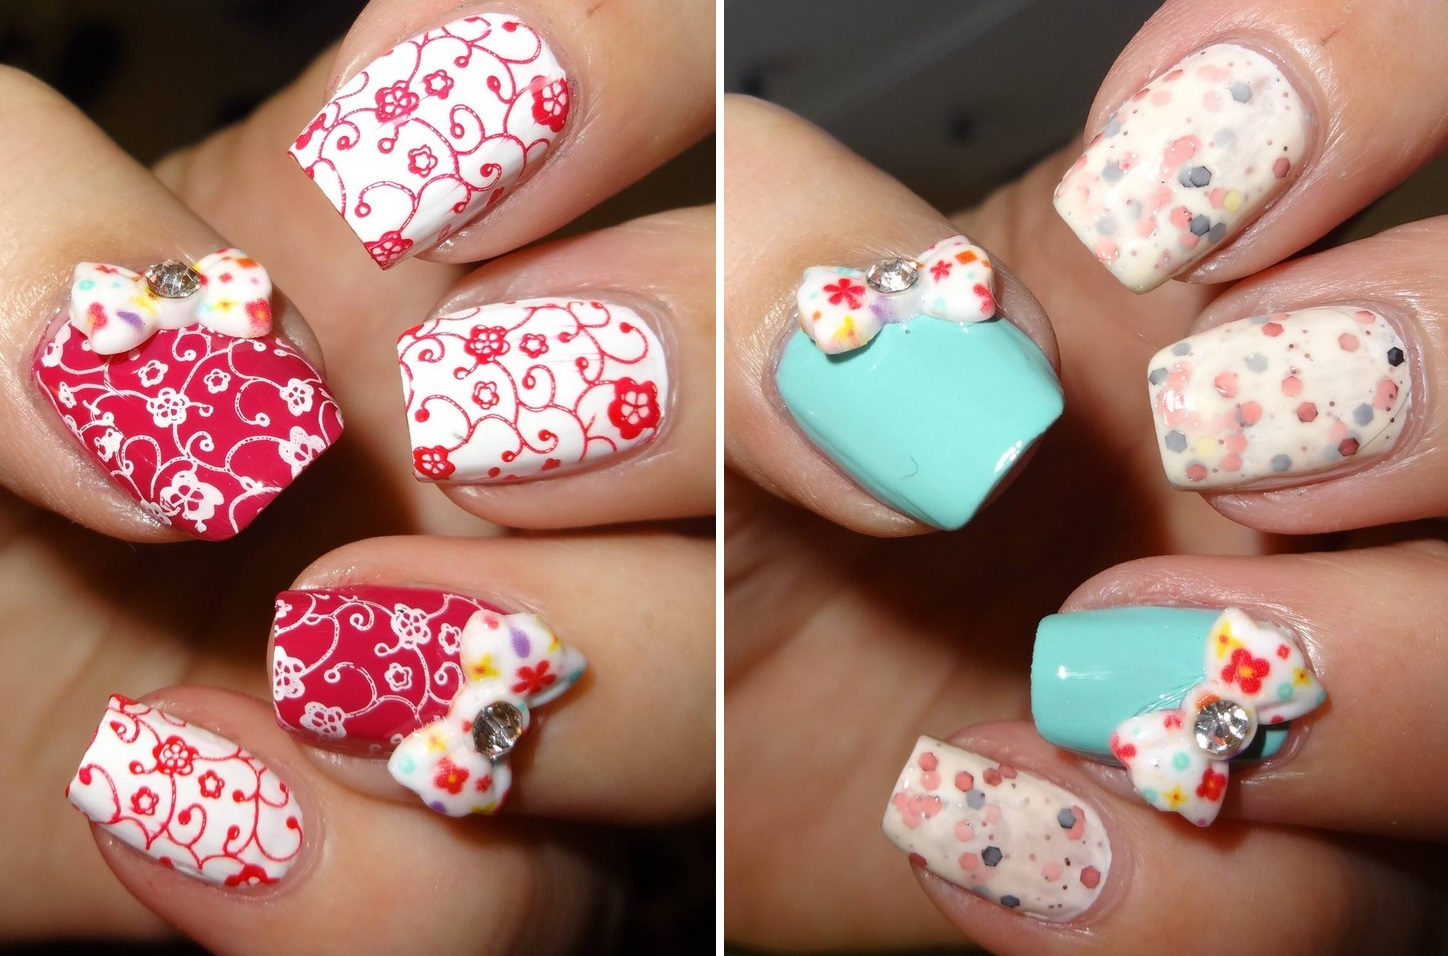 flower-pattern-3d-nail-art-flower-bow-designs.jpg